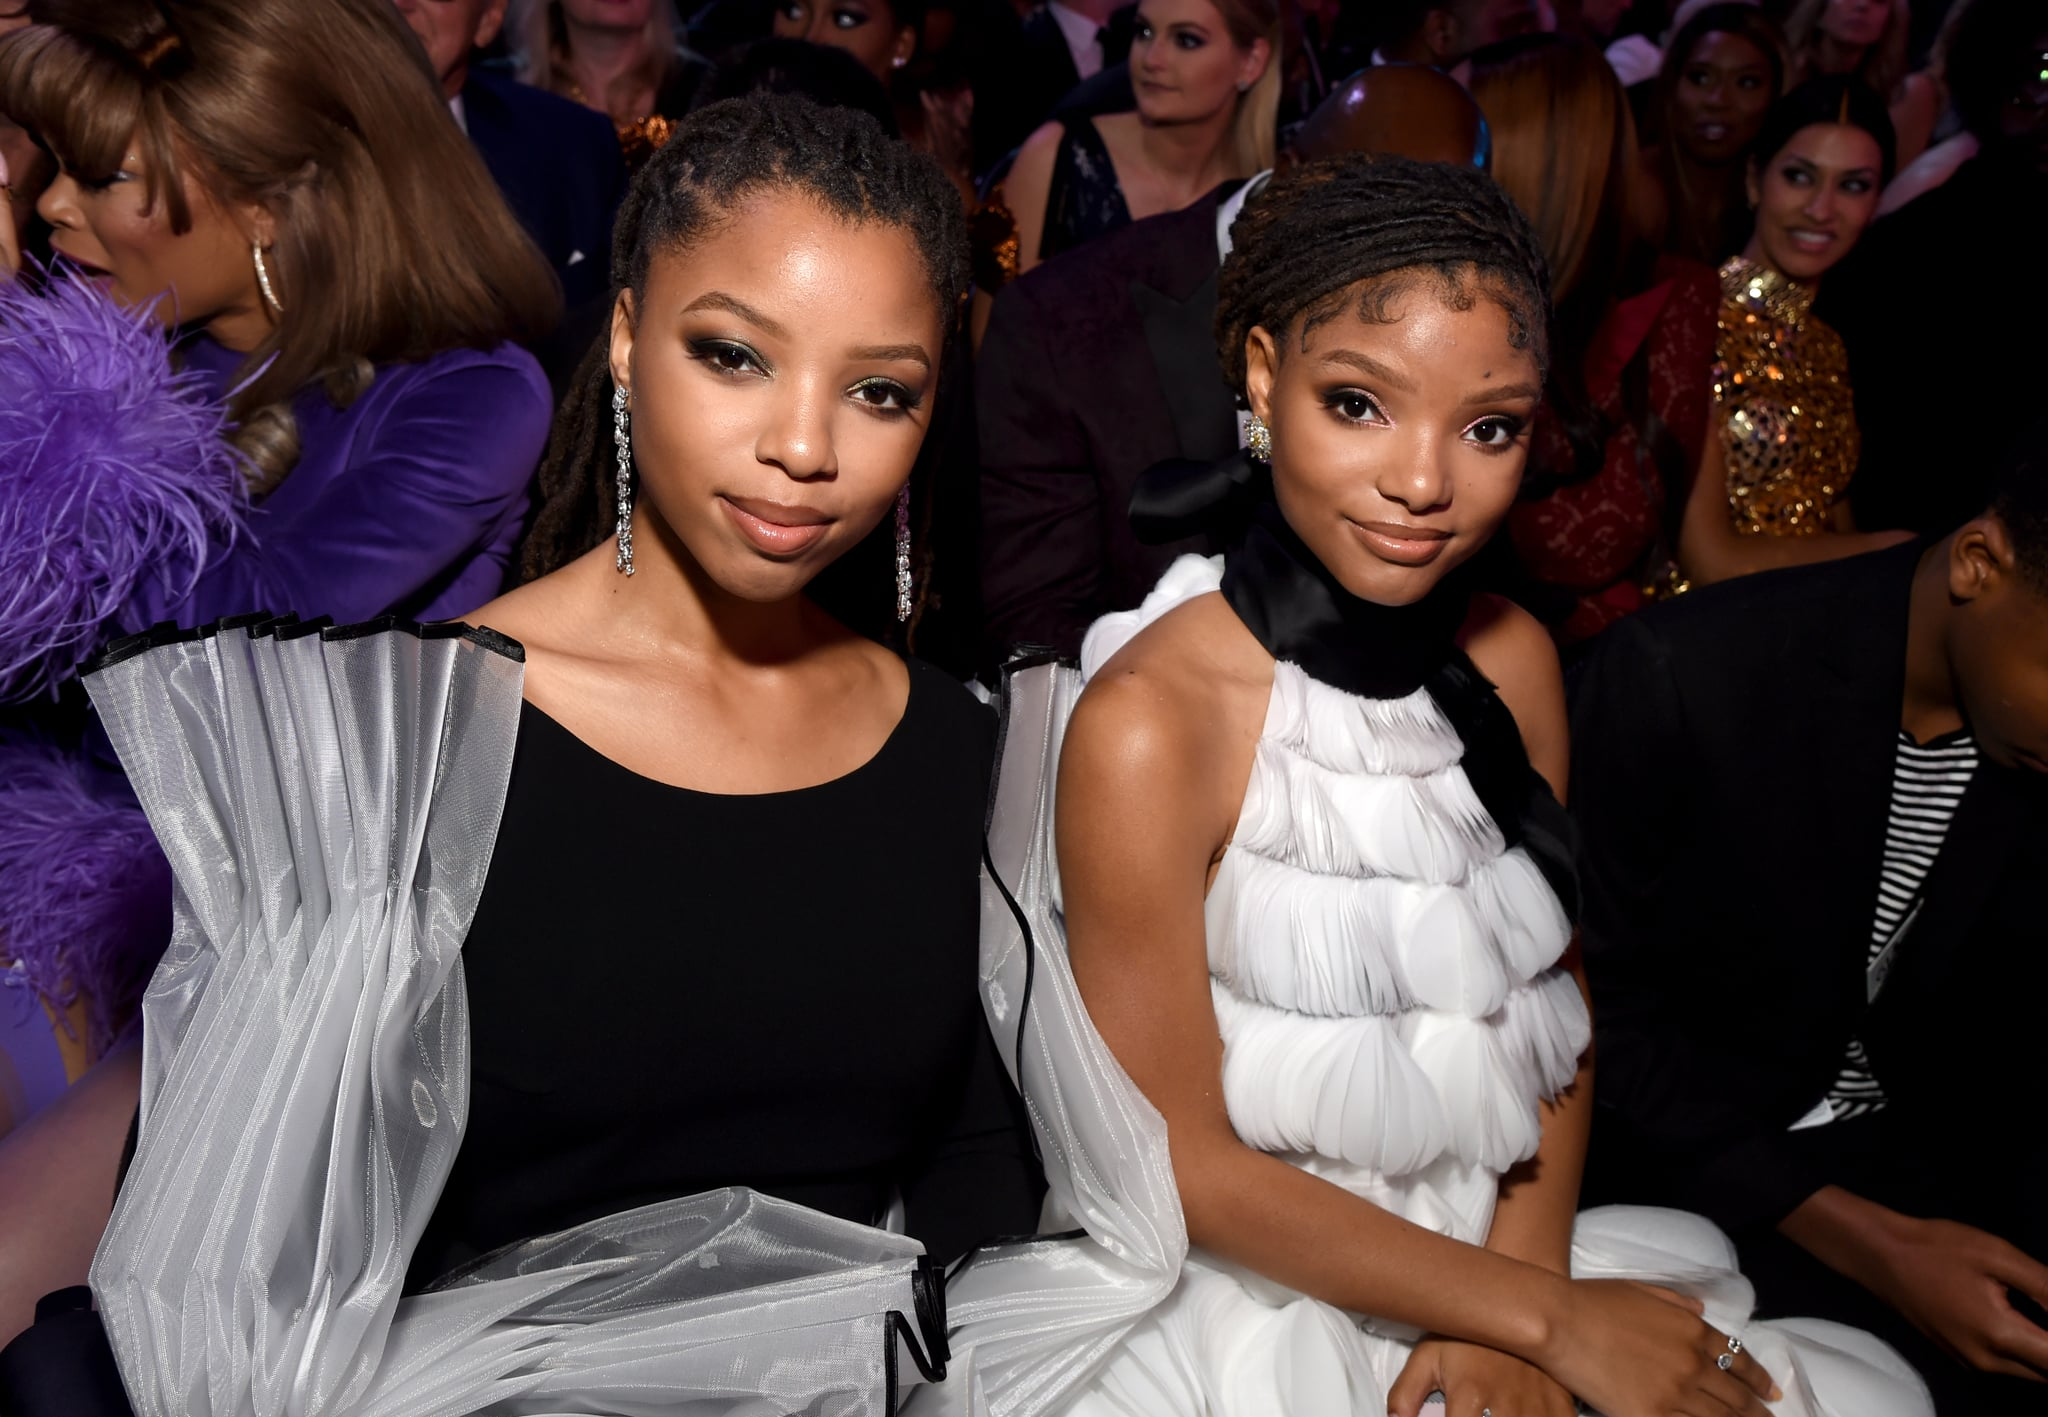 LOS ANGELES, CA - FEBRUARY 10:  Chloe Bailey (L) and Halle Bailey of Chloe x Halle during the 61st Annual GRAMMY Awards at Staples Centre on February 10, 2019 in Los Angeles, California.  (Photo by Michael Kovac/Getty Images for The Recording Academy)